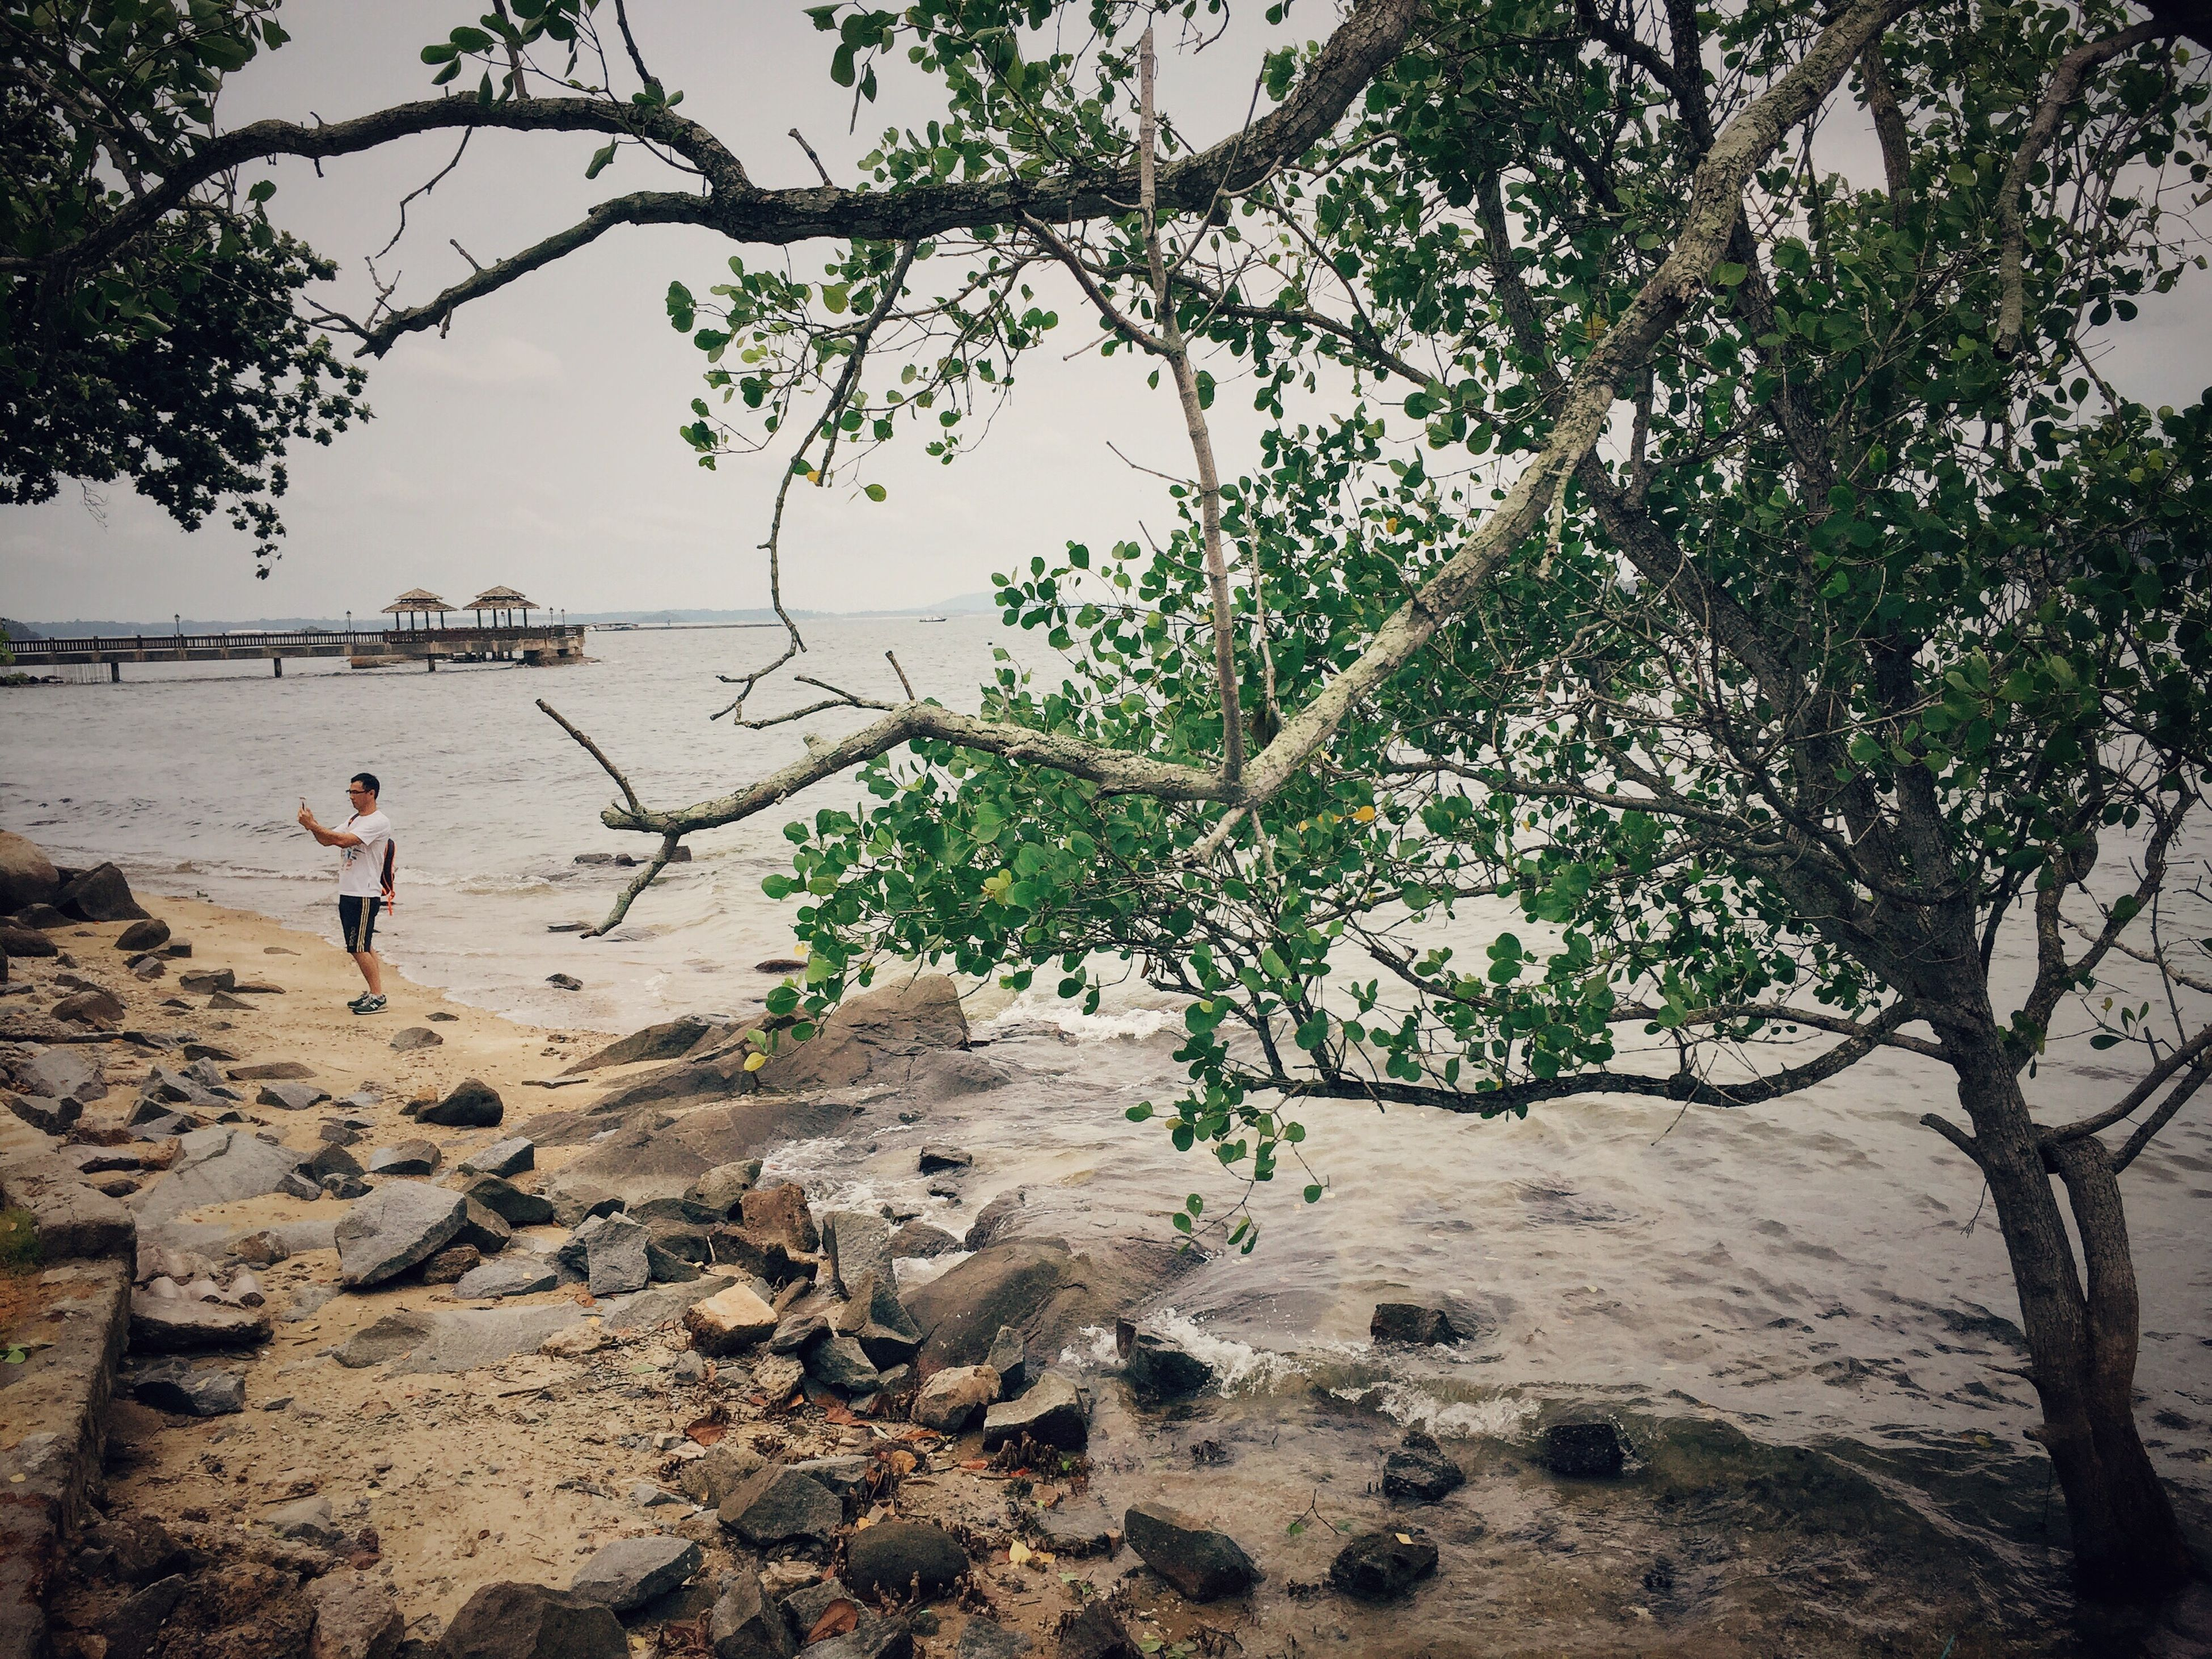 tree, beach, lifestyles, leisure activity, water, sand, nature, tranquility, vacations, tranquil scene, beauty in nature, day, scenics, shore, outdoors, non-urban scene, sea, sky, weekend activities